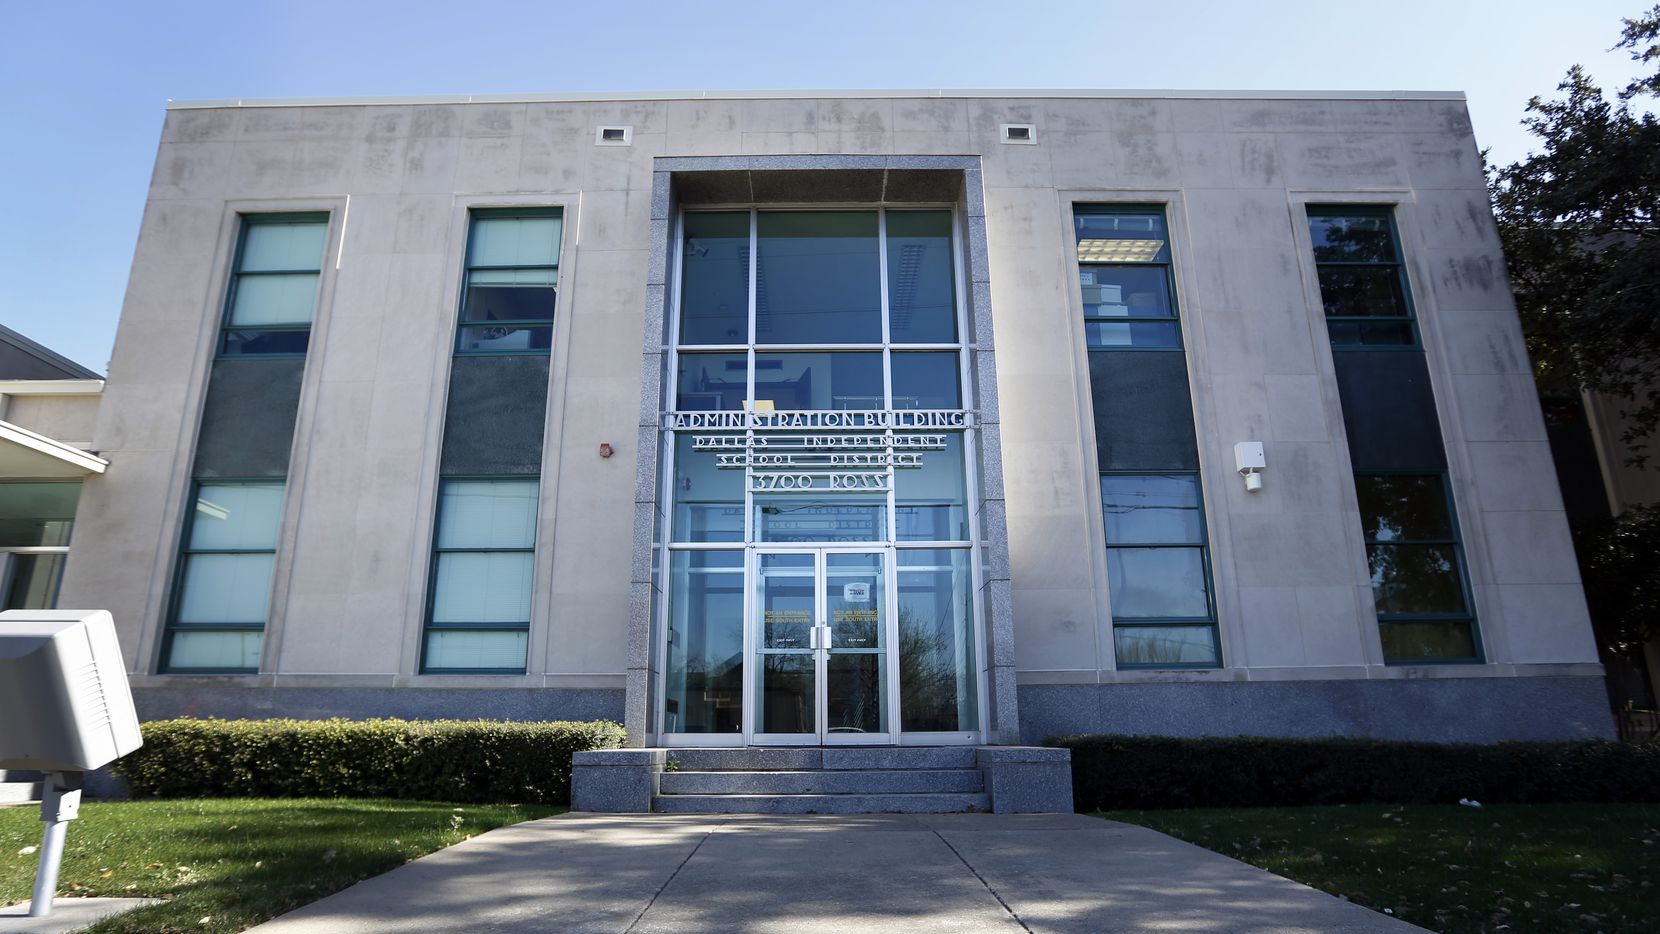 The entrance of DISD Administration Building on Ross Avenue in Dallas.